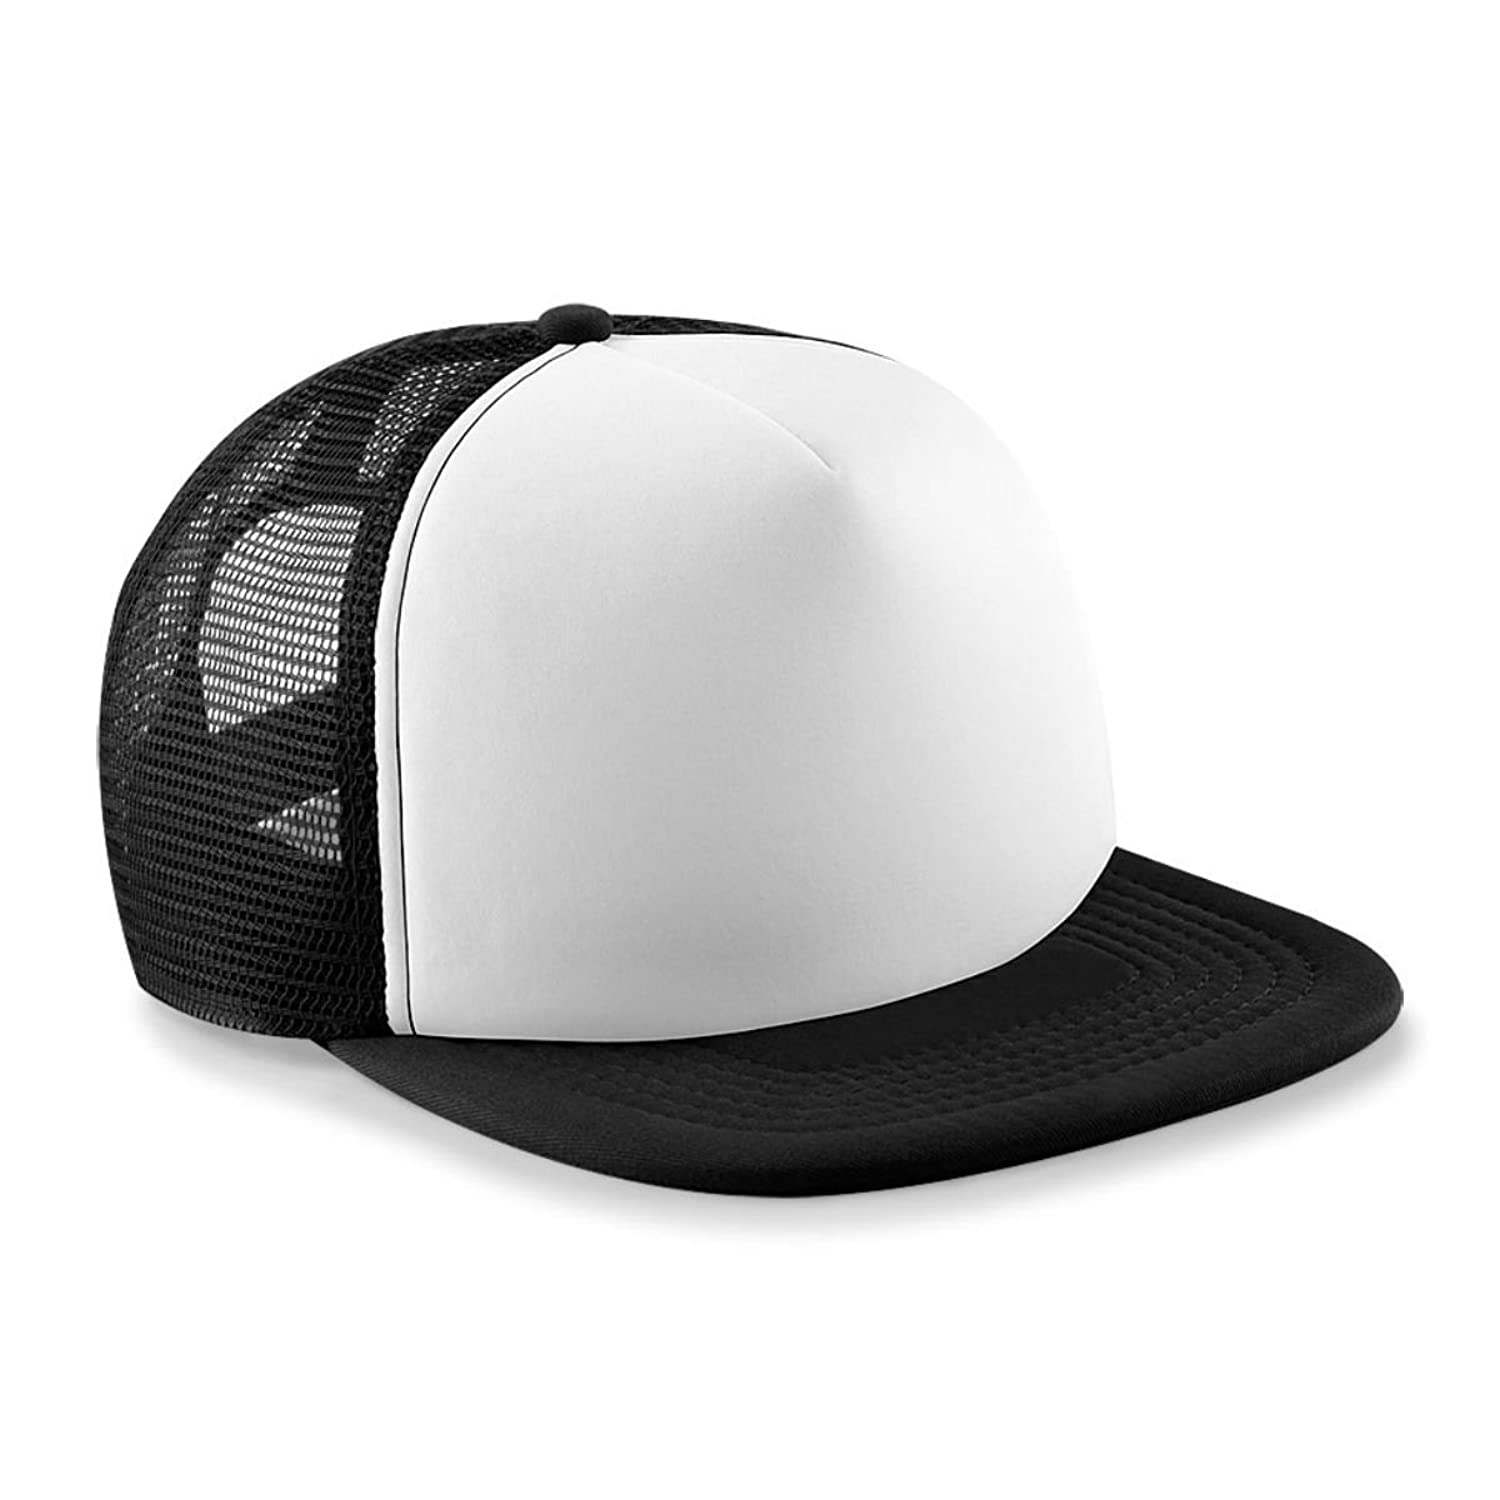 Vintage Snap Back Trucker Cap Black/White